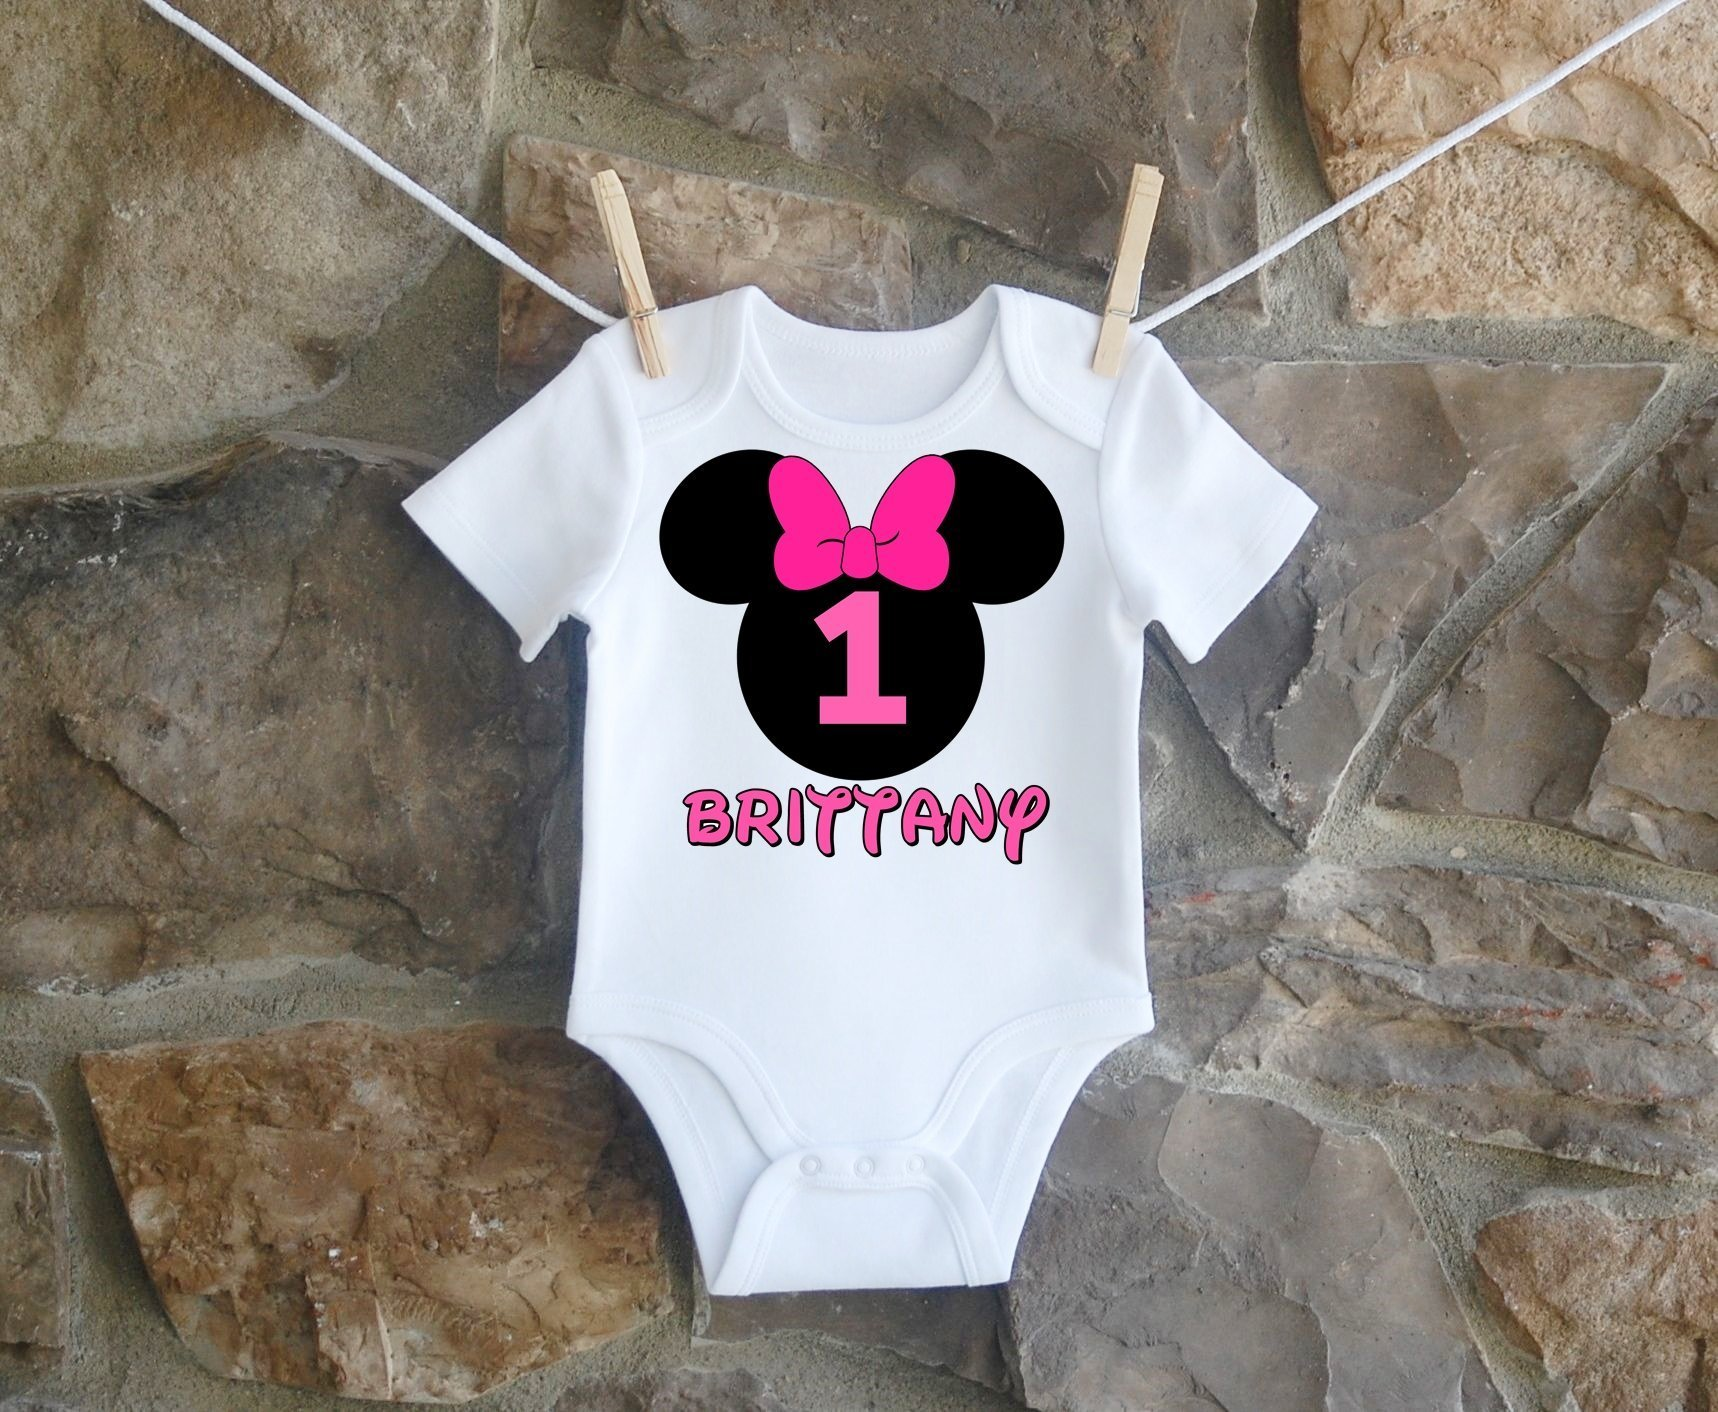 Minnie Mouse Birthday Shirt, Minnie Mouse Birthday Shirt For Girls, Personalized Girls Hot Pink Minnie Mouse Ears Birthday Shirt, Customized Minnie Mouse Birthday Shirt